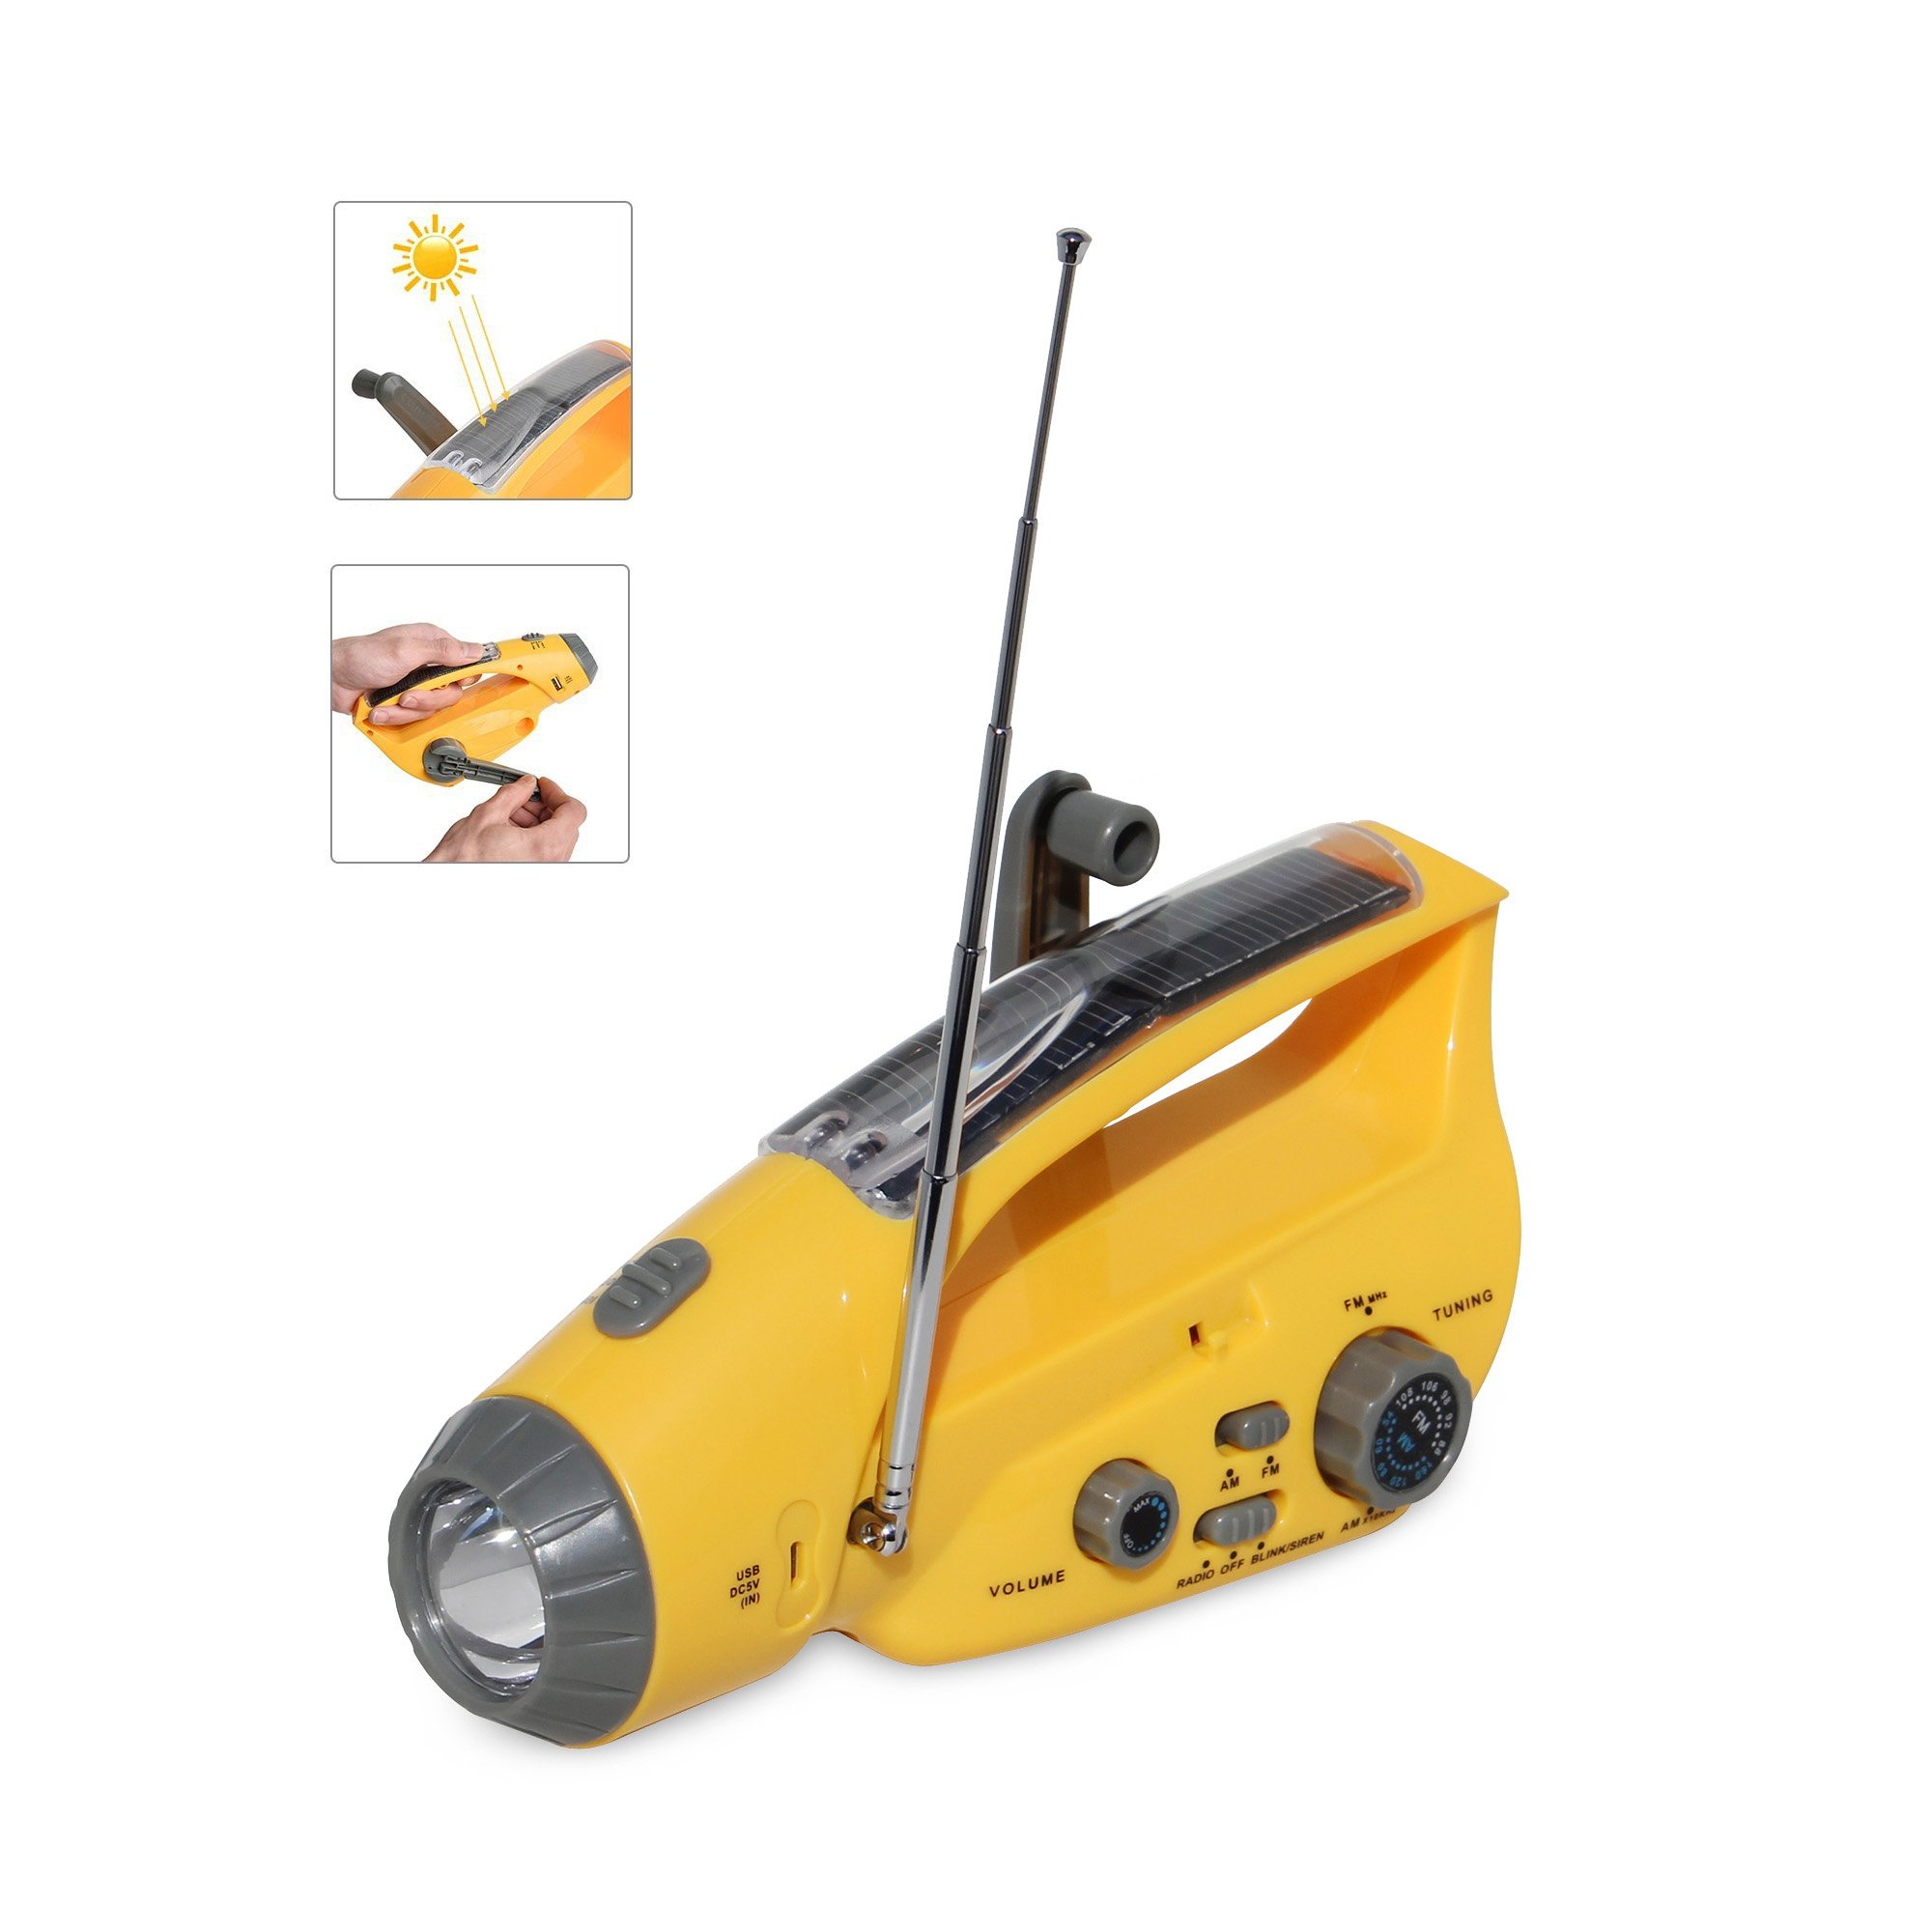 Dikley Solar Handcrank Emergency Radio Flashlight AM/FM Radio Siren and Blink Cell Phone Charger for Camping Outdoor Hiking Climbing